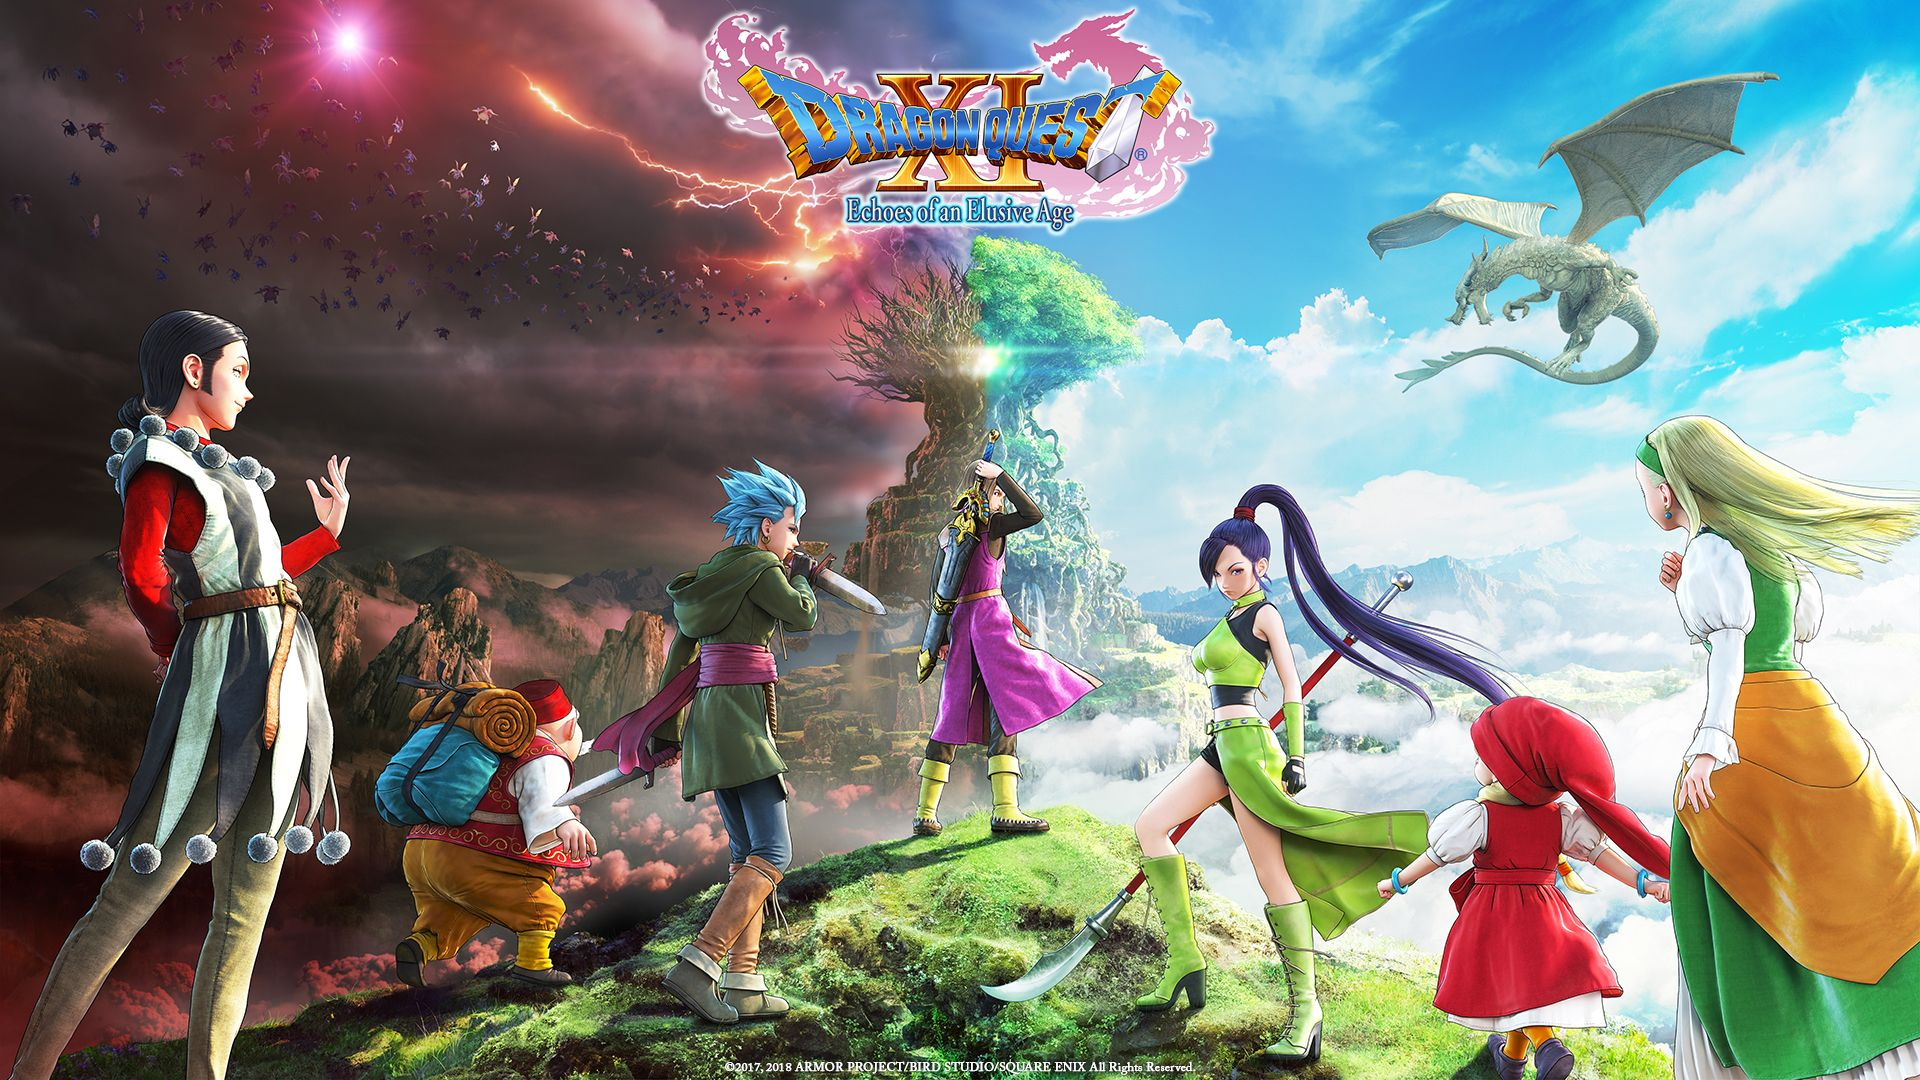 Dragon Quest Xi Post Game Guide How To Strengthen Your Party For The Ultimate Challenge